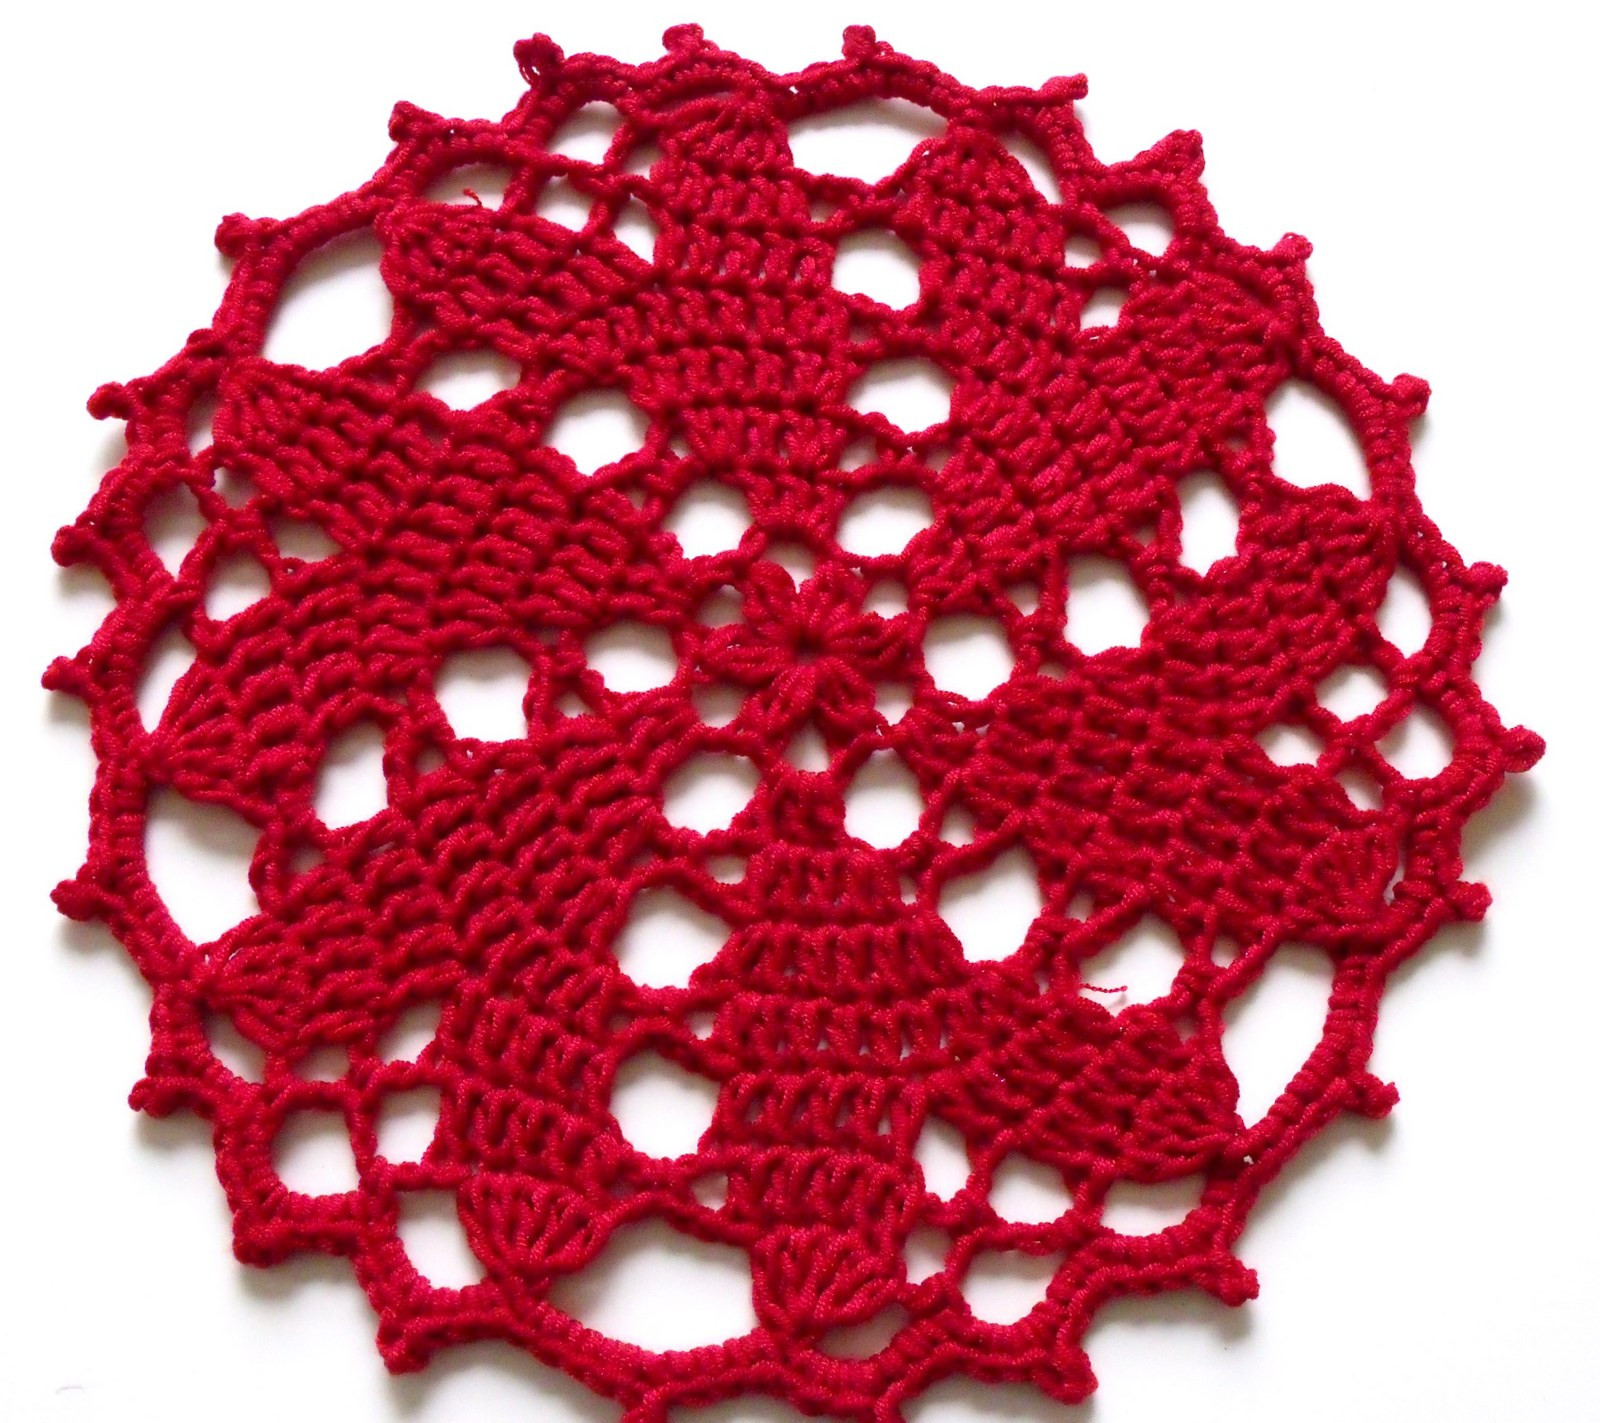 Heart Doilies Elegant Crochet Heart Doily Pattern Search Results Of Marvelous 46 Photos Heart Doilies